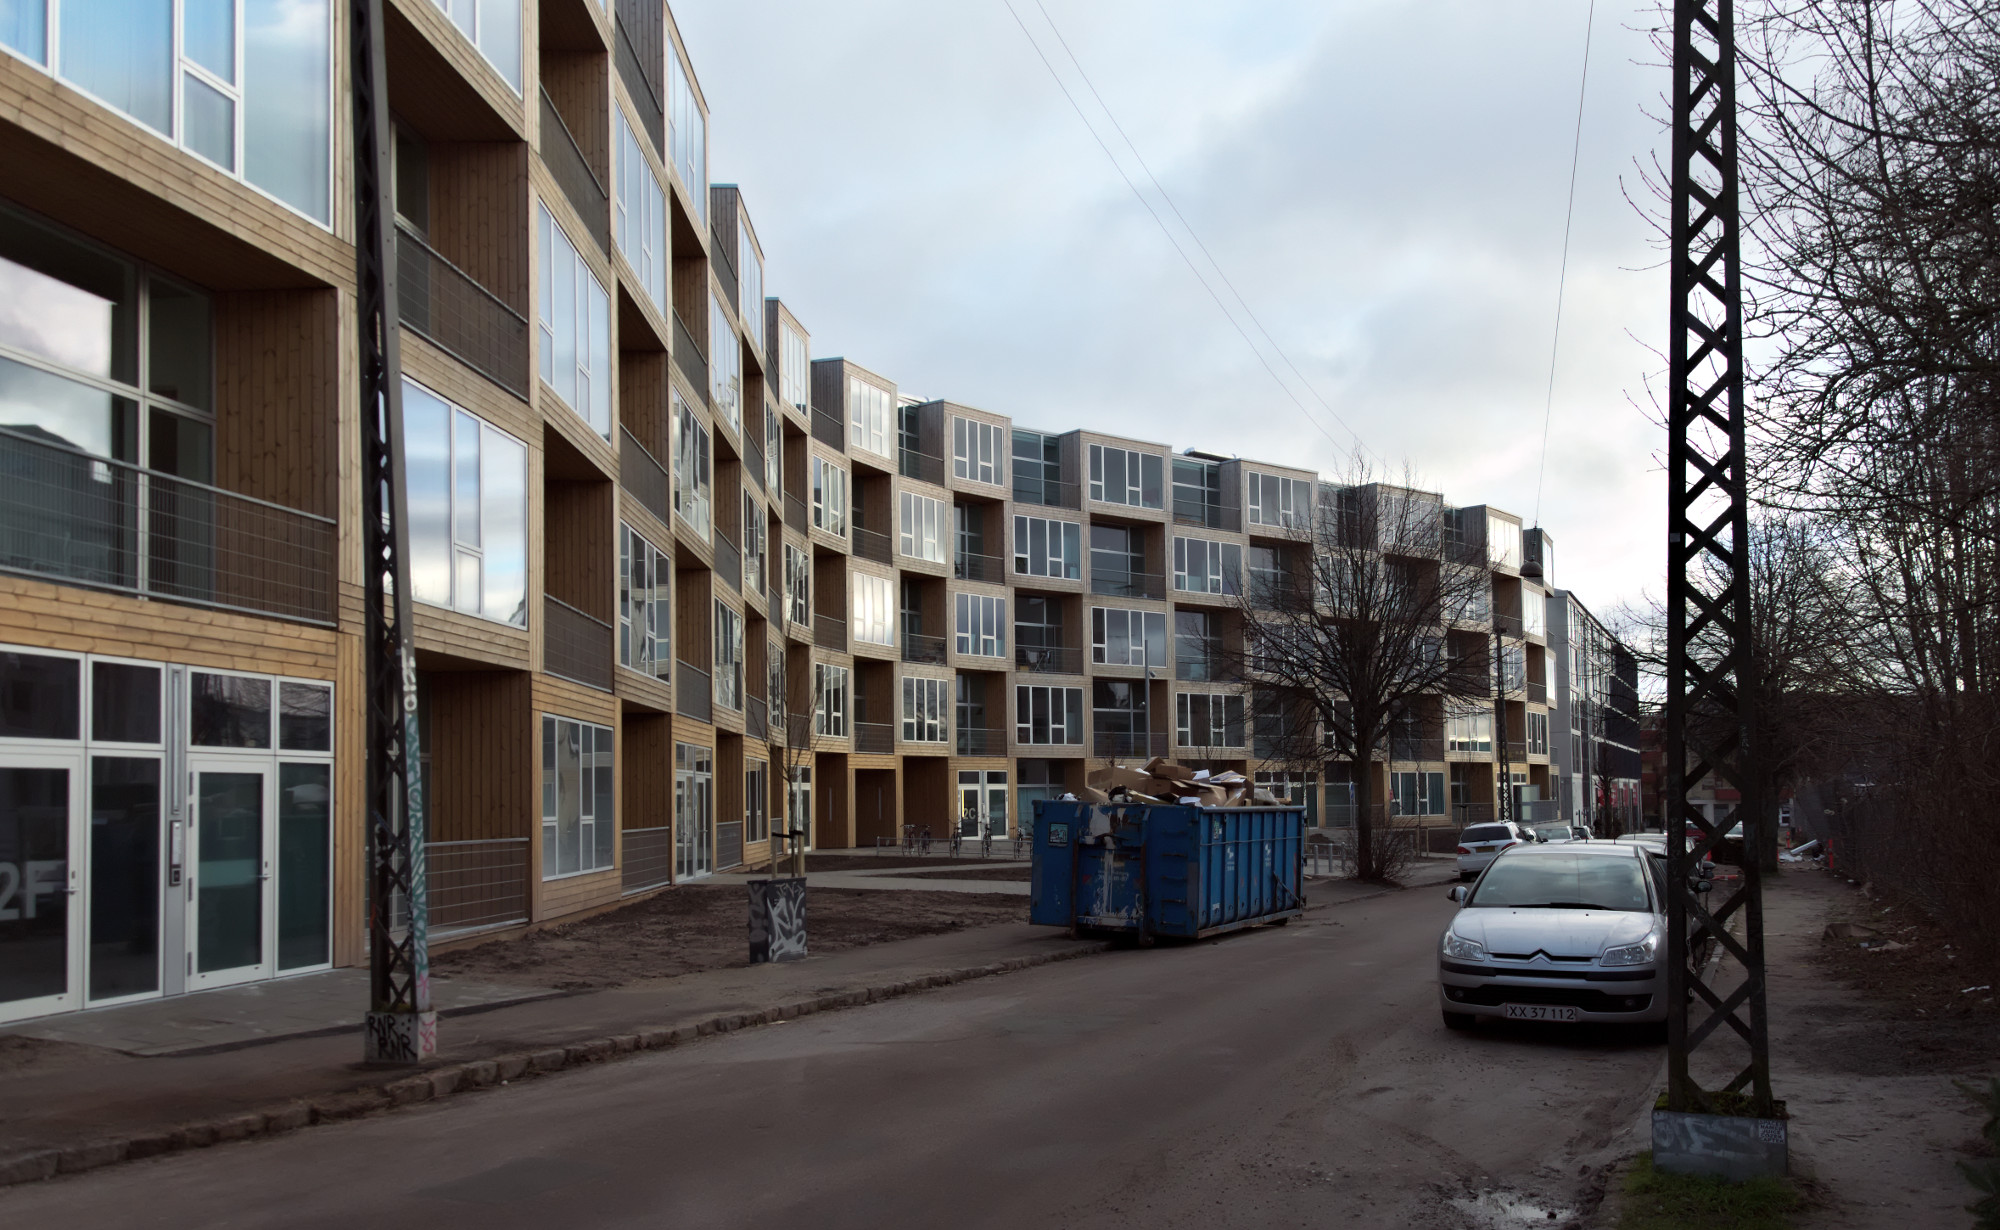 BIG social housing at Dortheavej